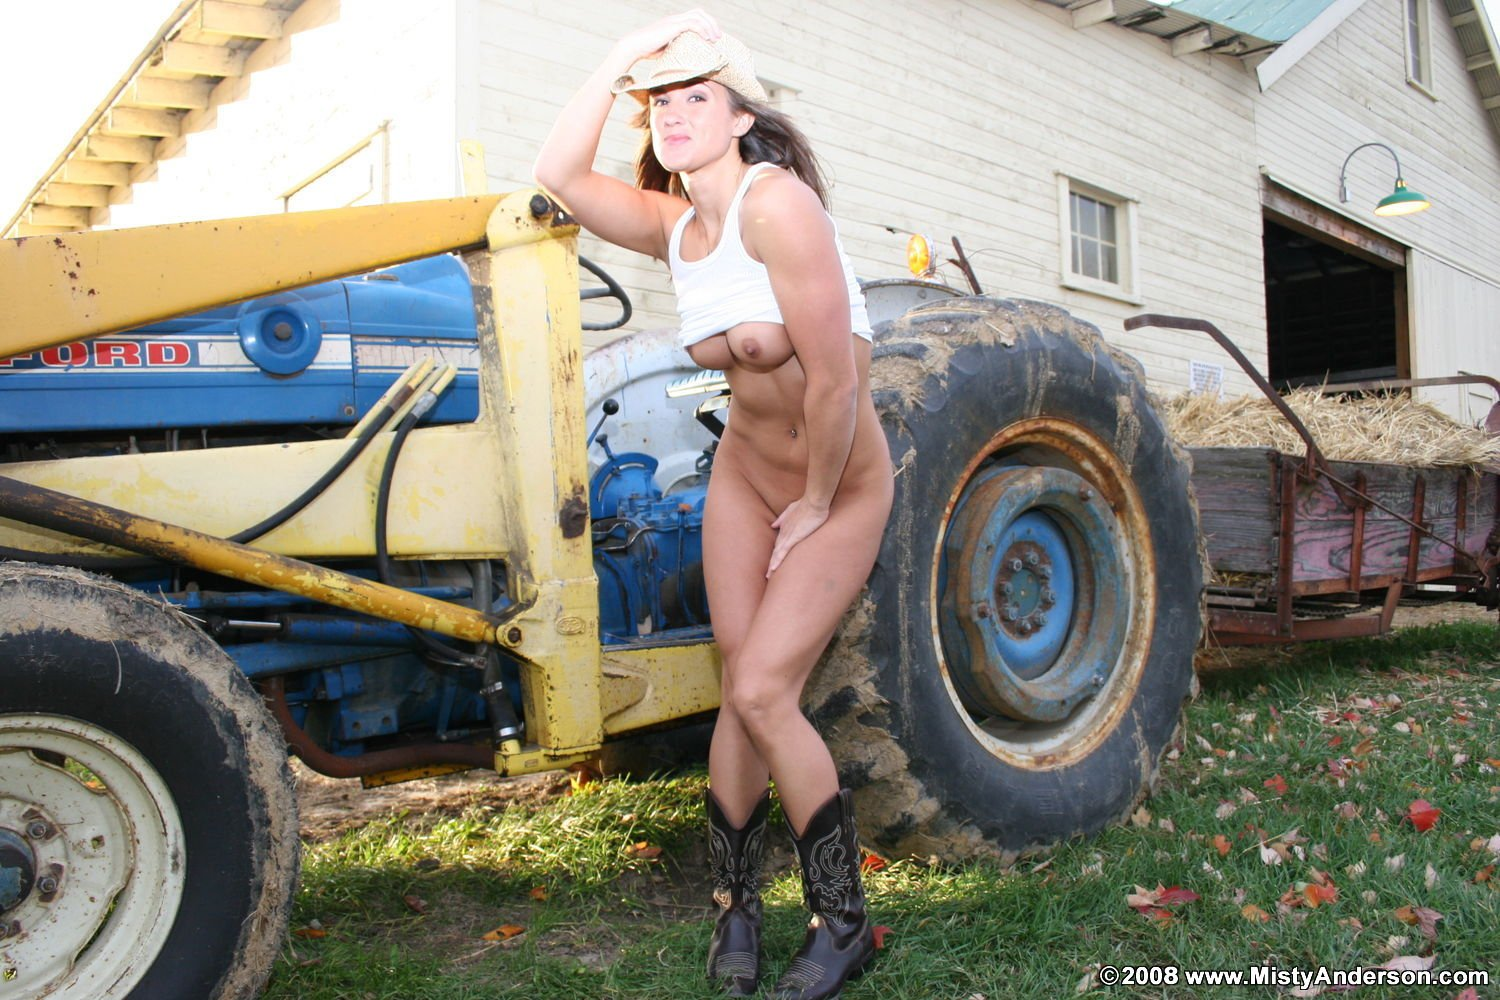 Nude woman on farm tractor pics — 15